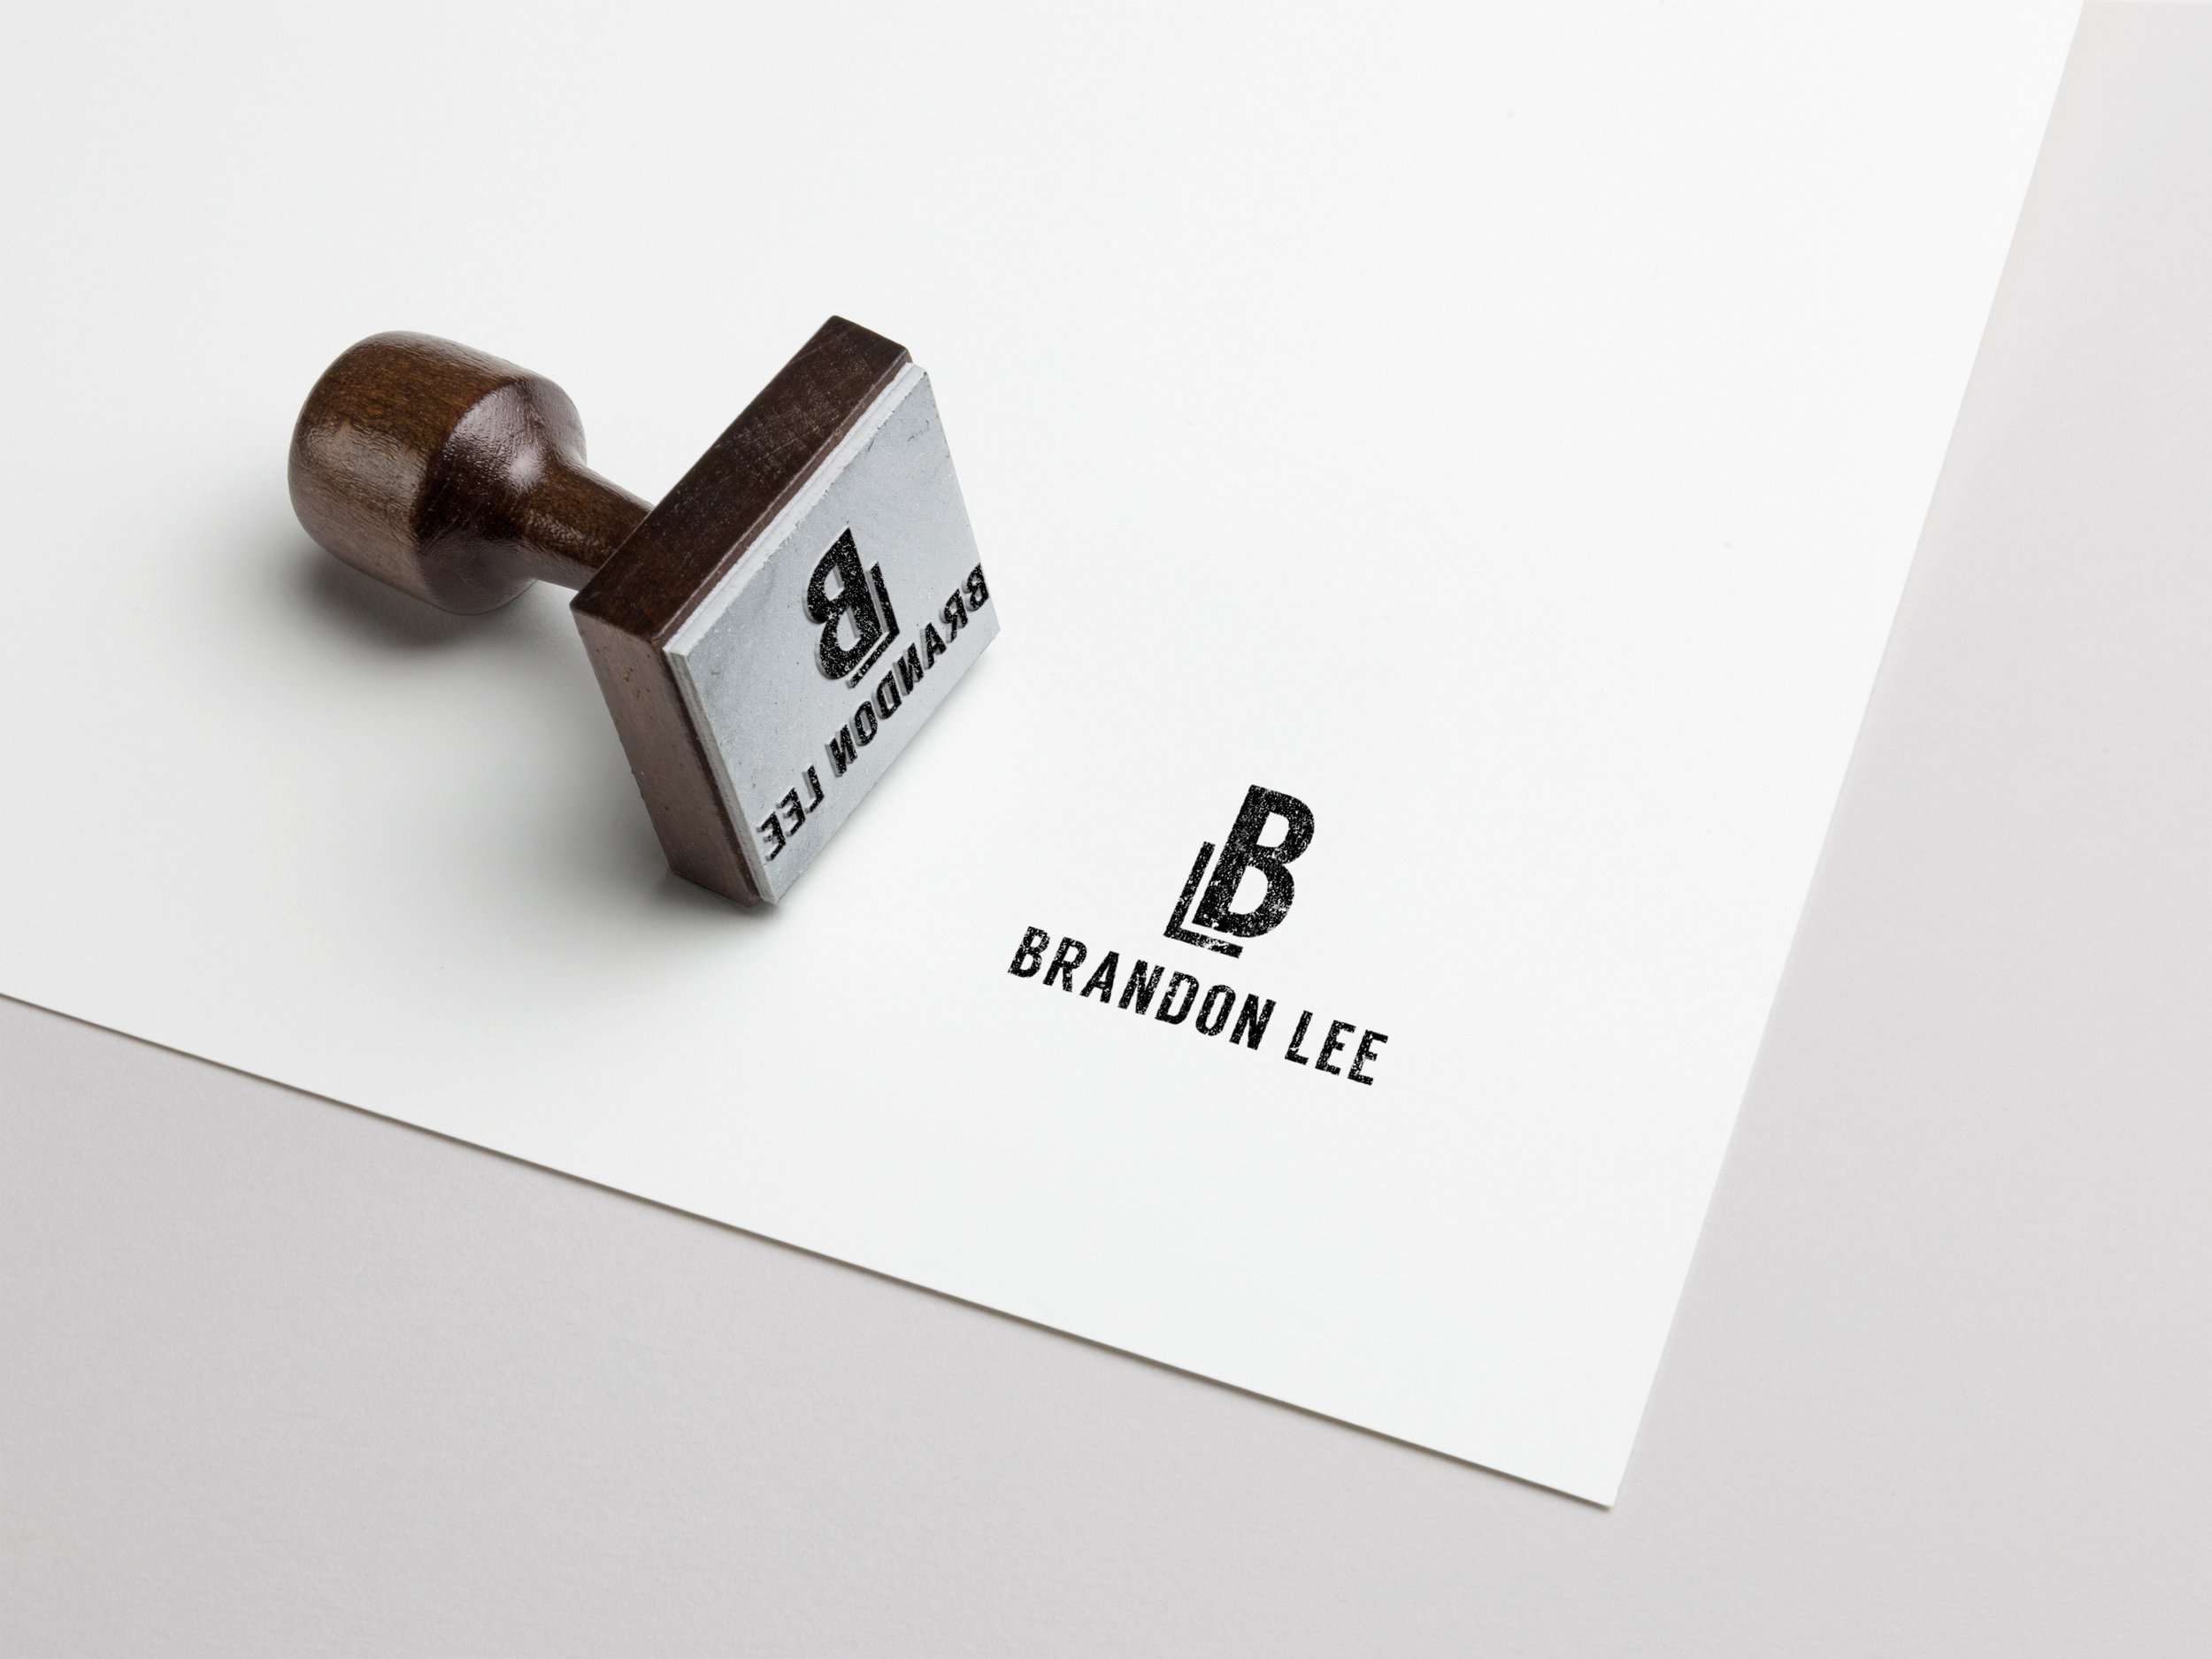 Brandon-Lee-Stamp-Mockup.jpg